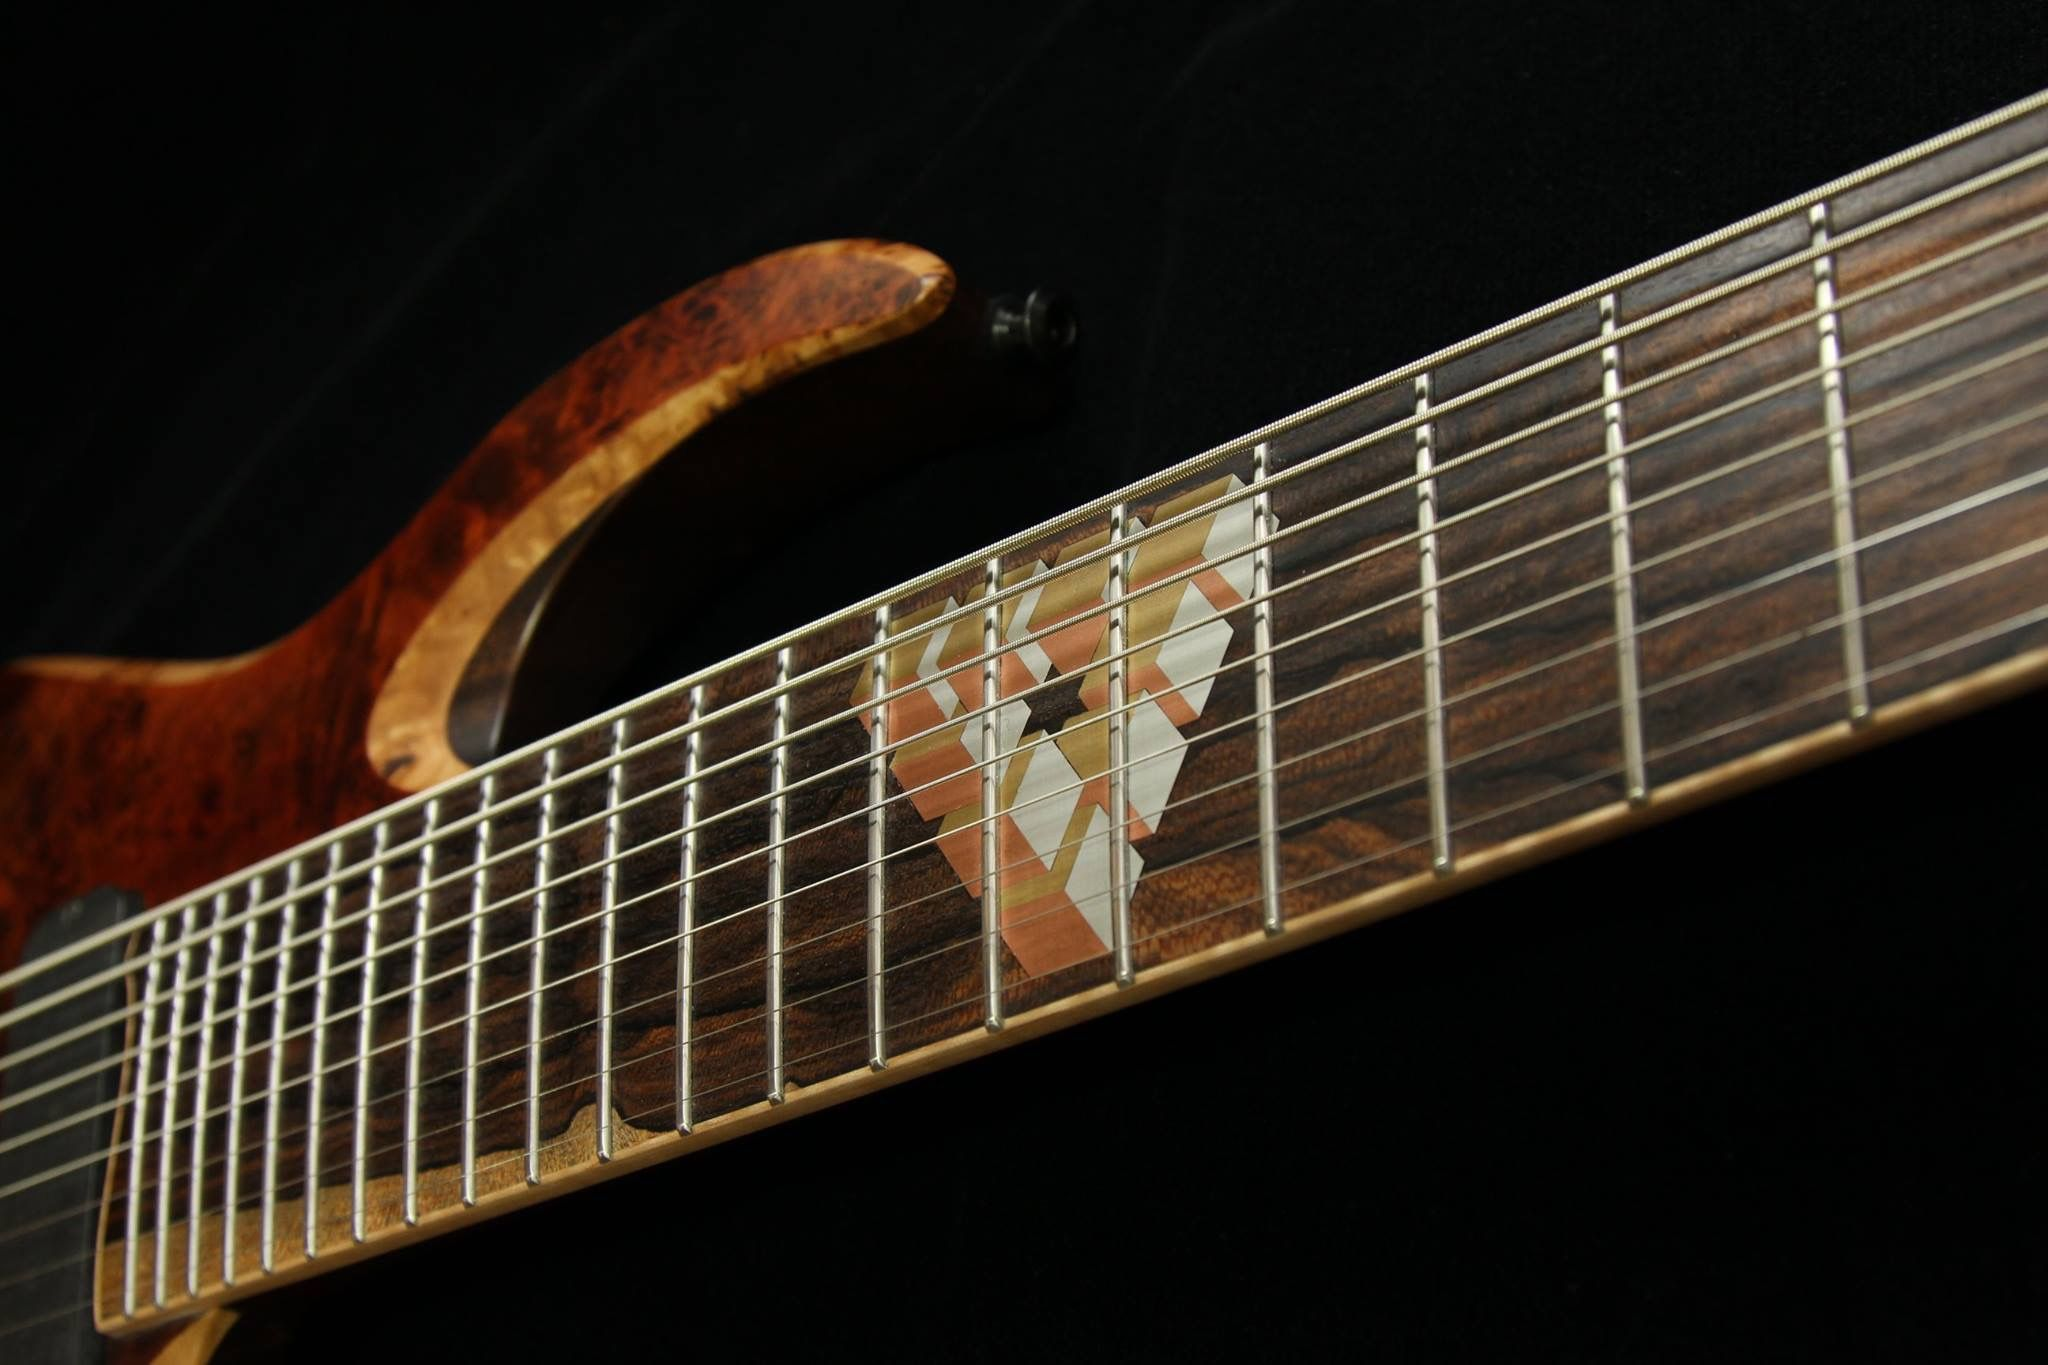 late ngd waghorn corax w9 fanned fret 9 string. Black Bedroom Furniture Sets. Home Design Ideas